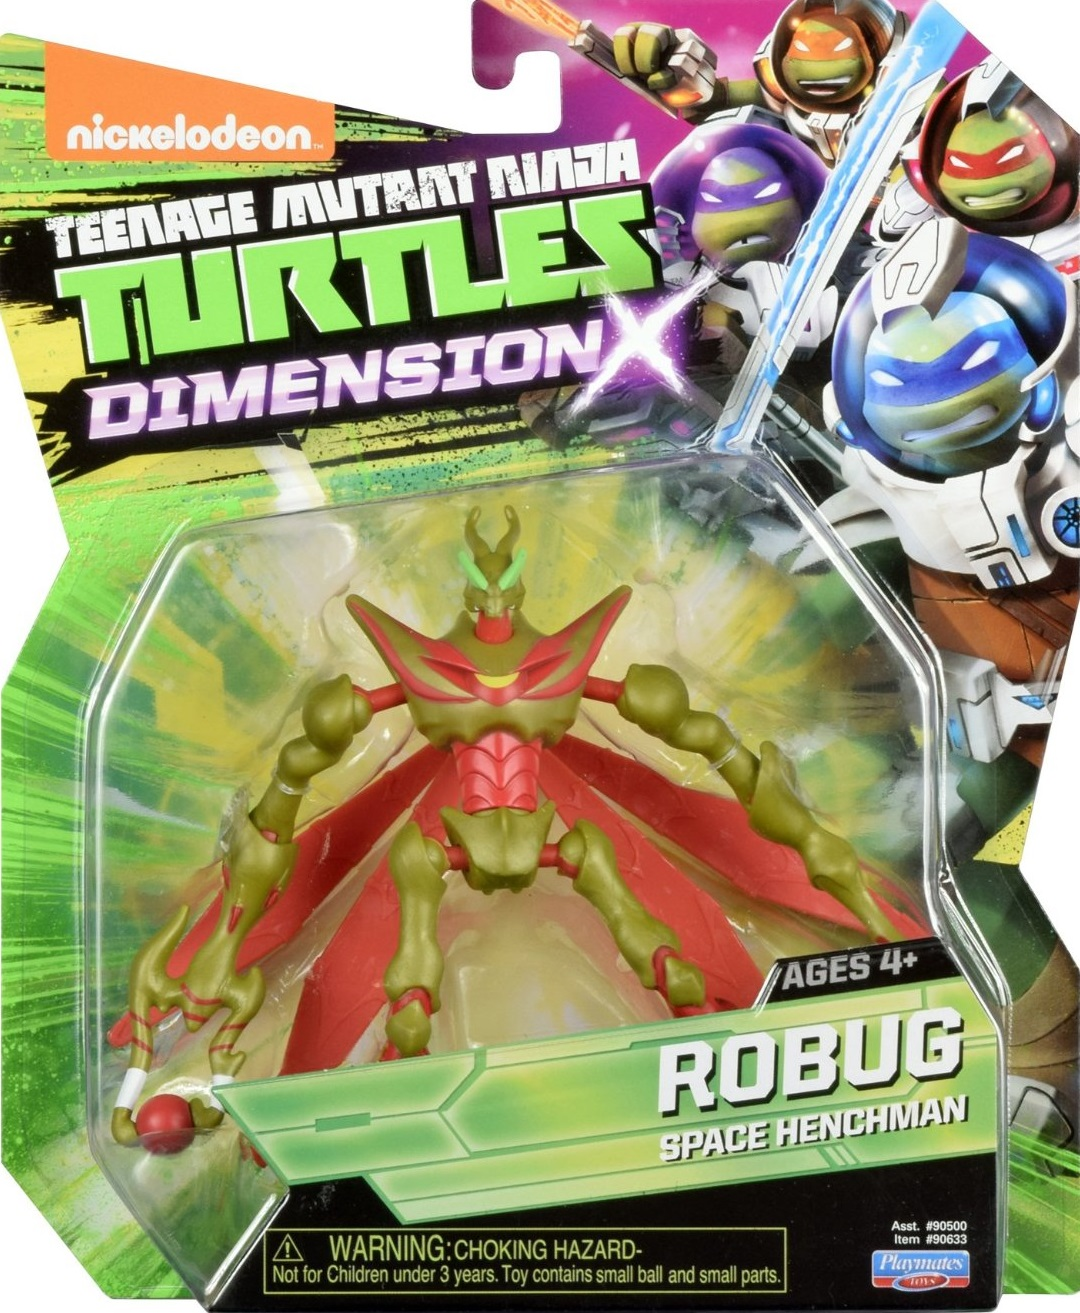 Teenage Mutant Ninja Turtles 2012 Neuralizer Toy : Robug action figure tmntpedia fandom powered by